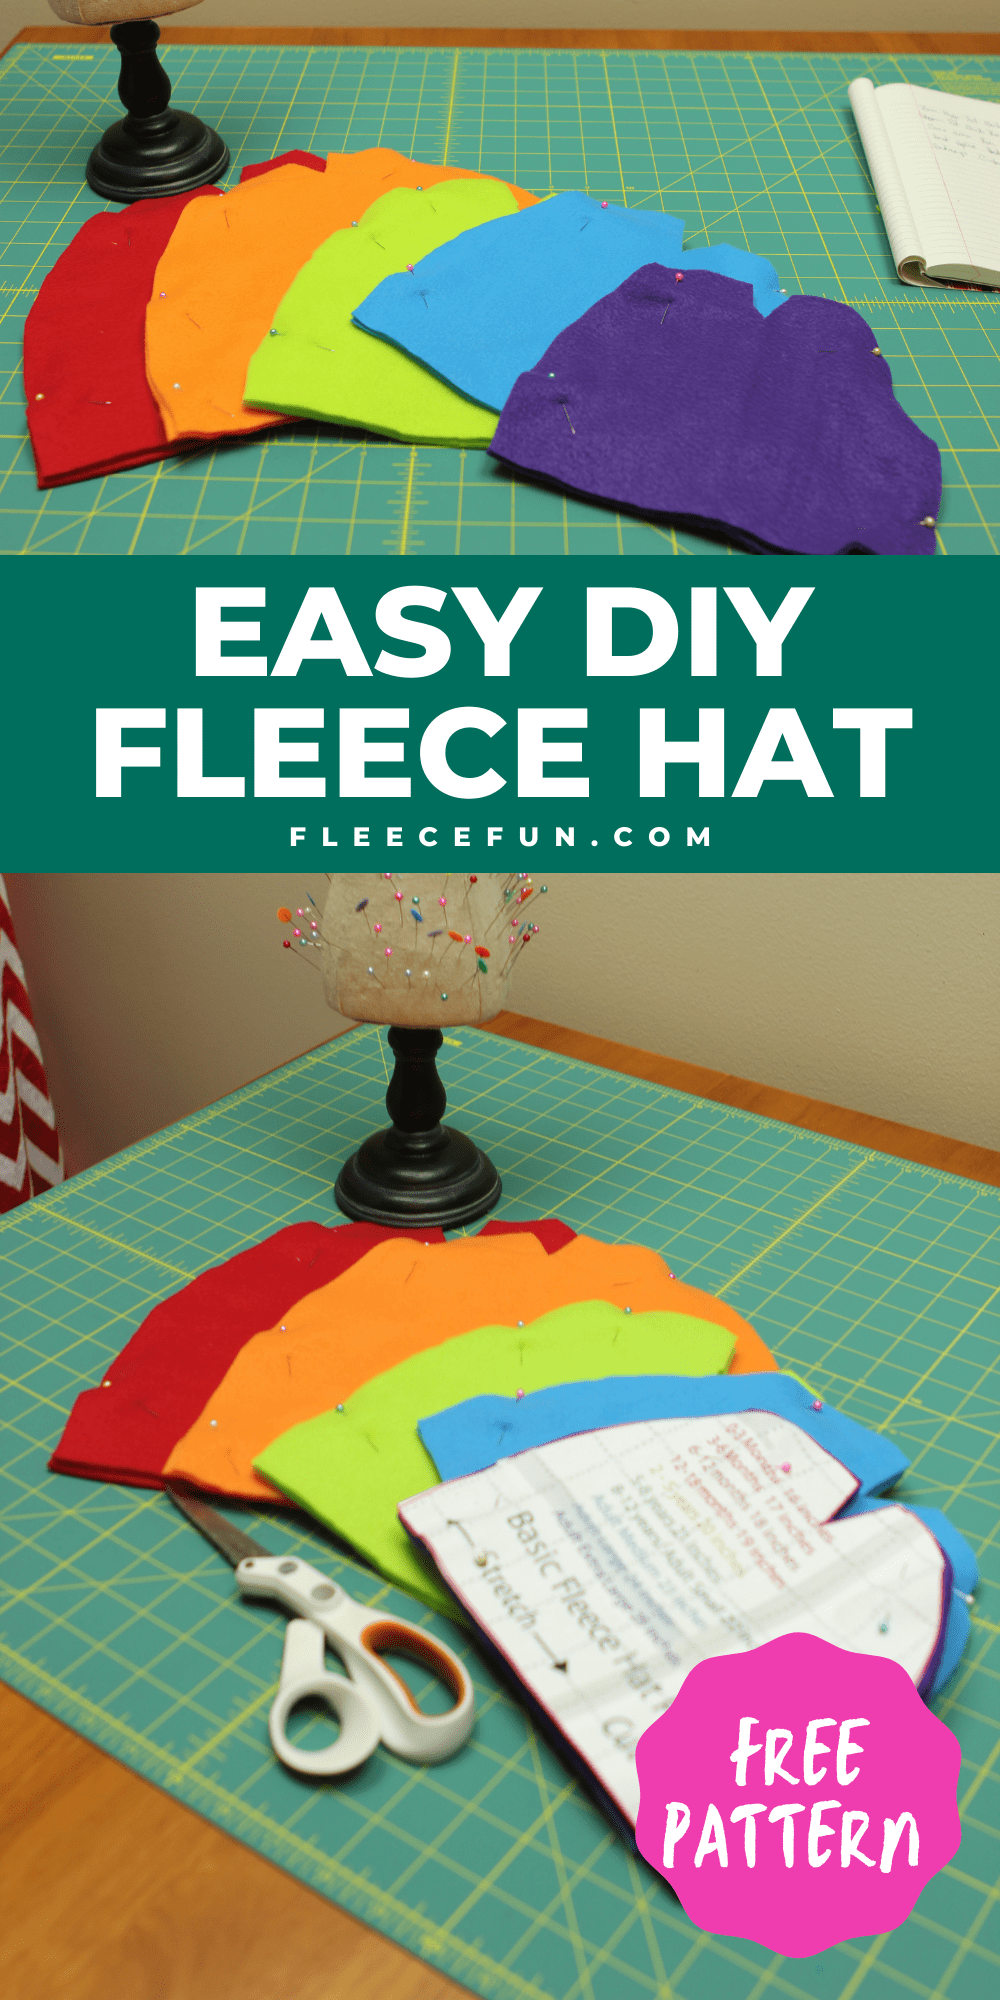 I love this easy basic fleece hat tutorial. I love the free pattern that comes with it. Perfect fleece sewing project. This winter hat comes in sizes baby to adult. Perfect sewing pattern for the whole family. #fleecehatspatternsfree #fleecehatdiy #fleecehattutorial #sewingproject #fleecehatpatternkids #fleecehatpatternsforwomenfree